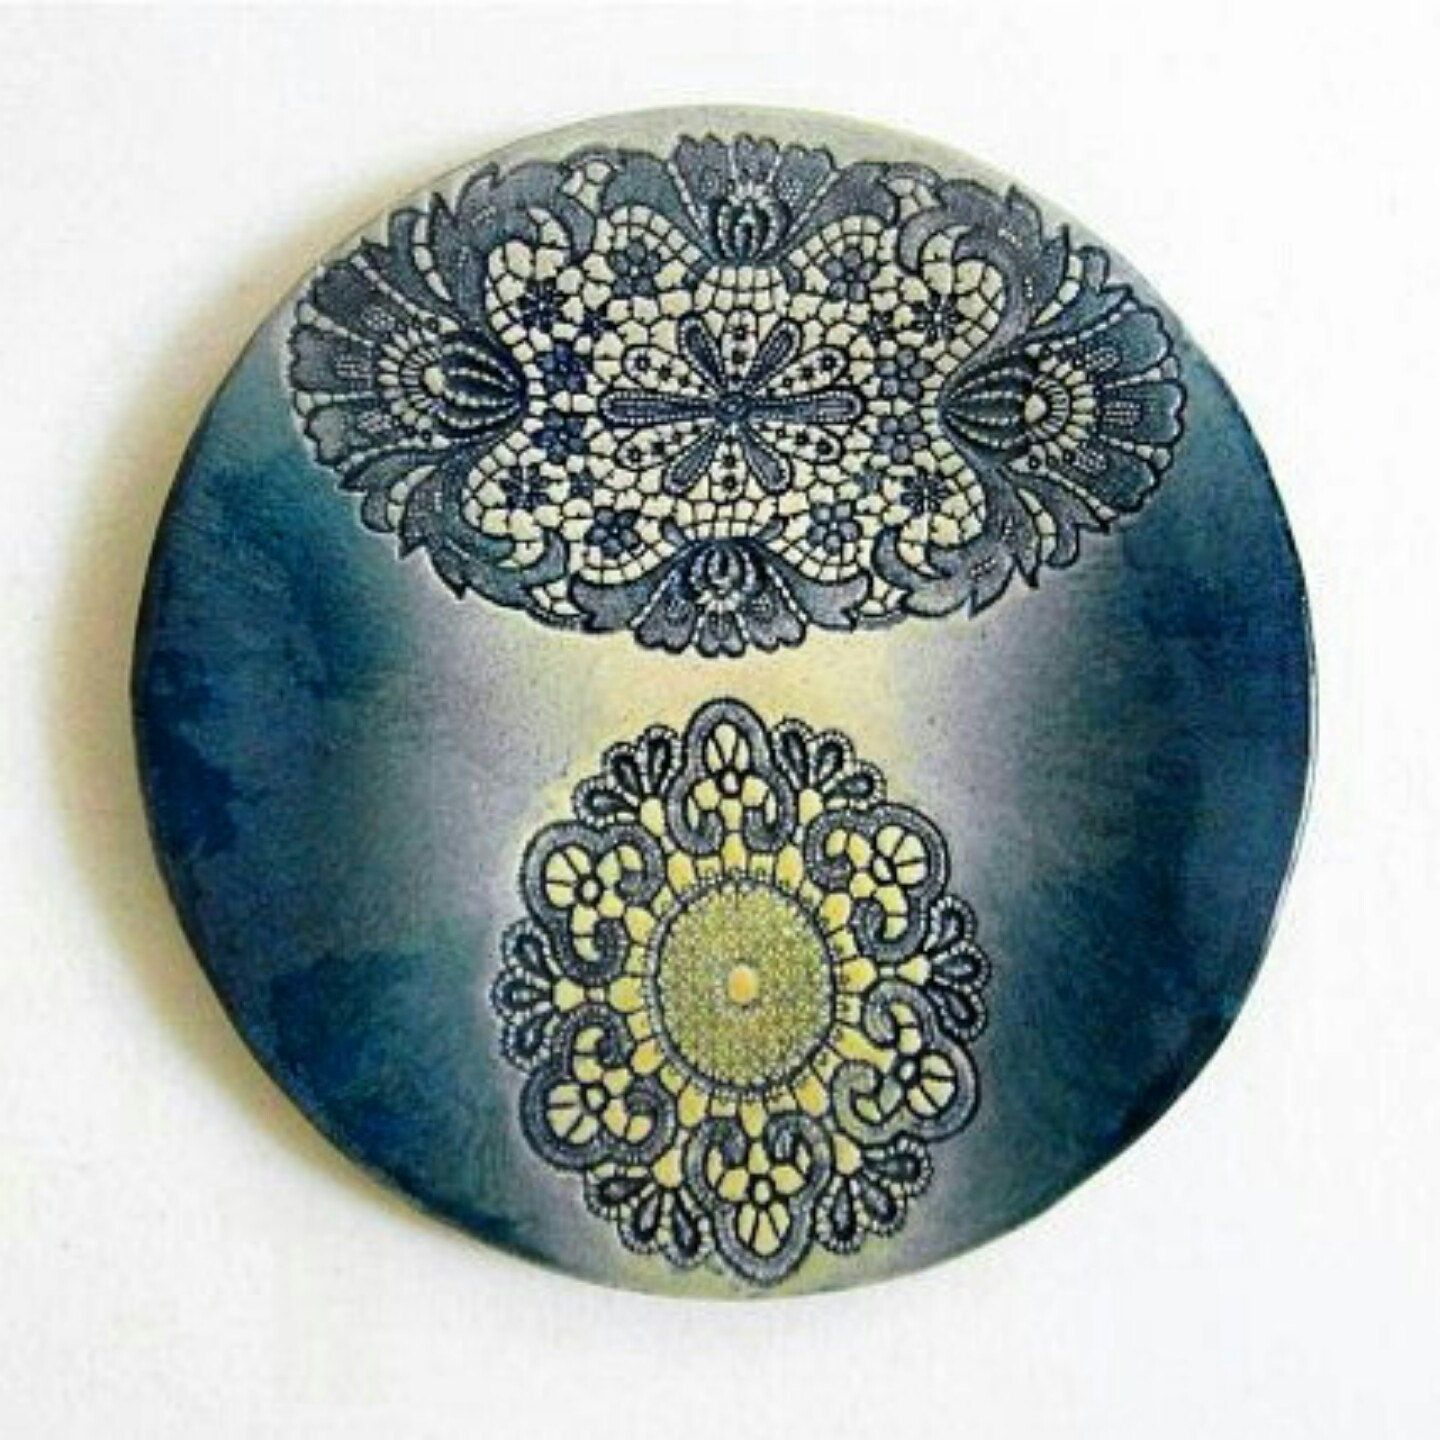 ceramic plague with lace ornament in ehtno style for interior decoration